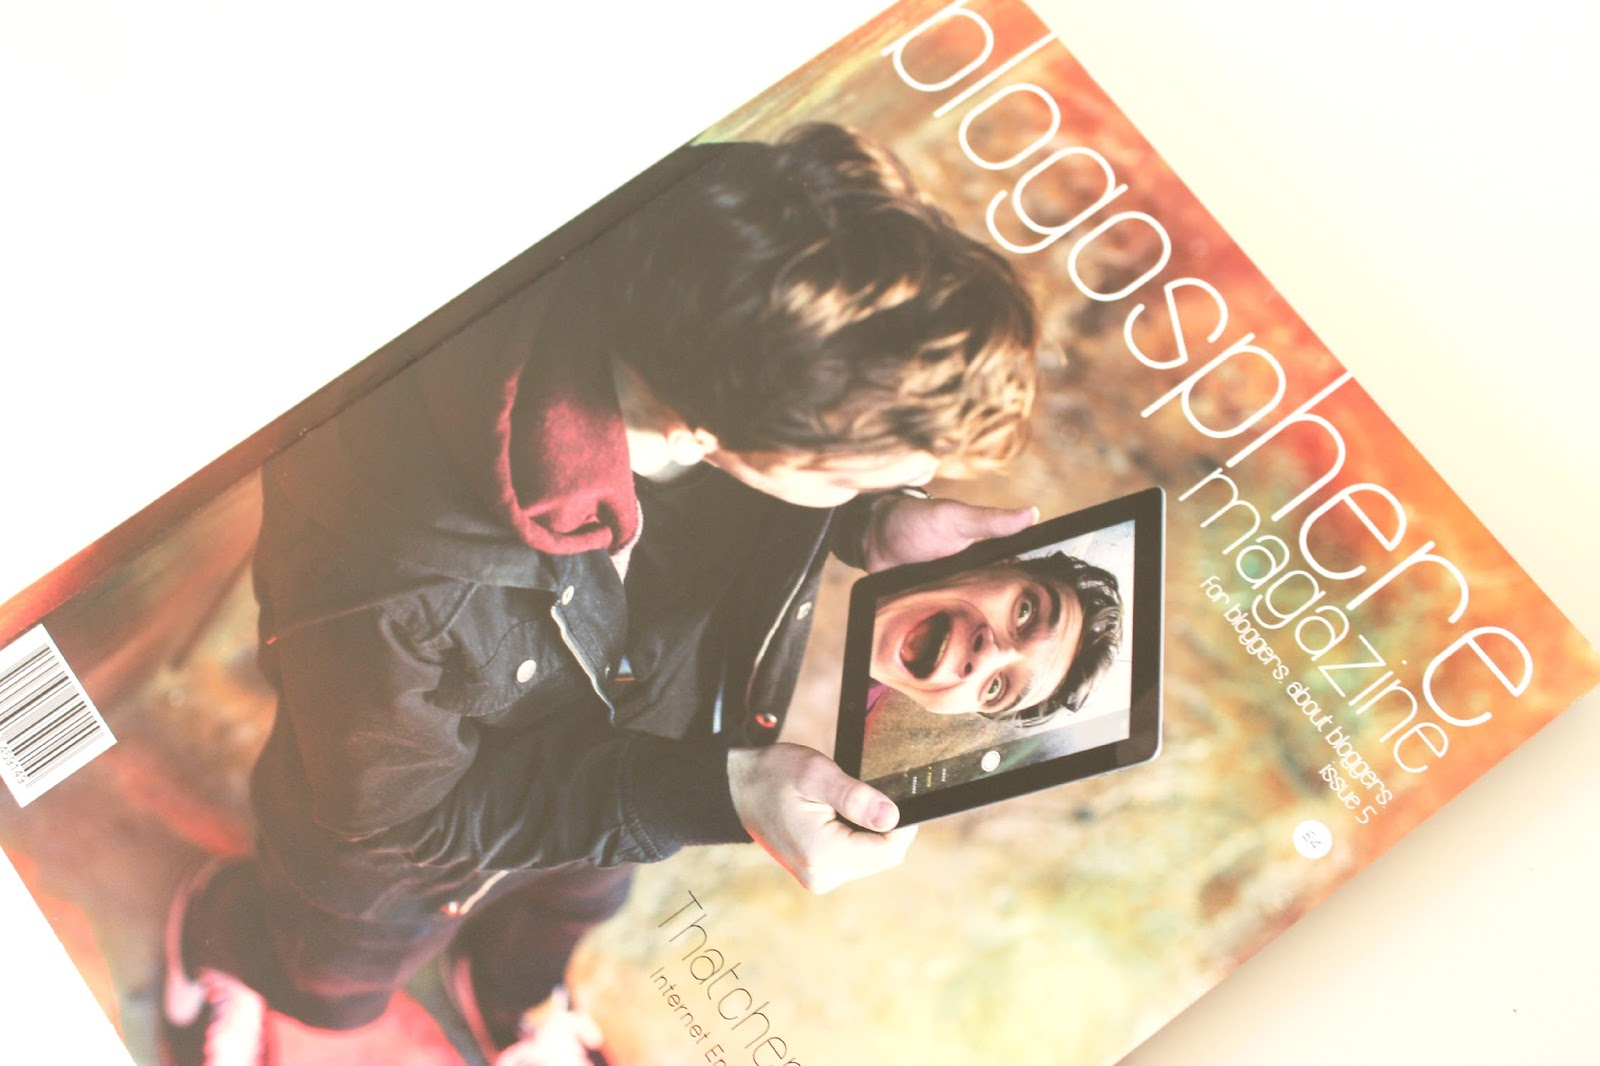 A picture of Blogosphere Magazine Issue 5